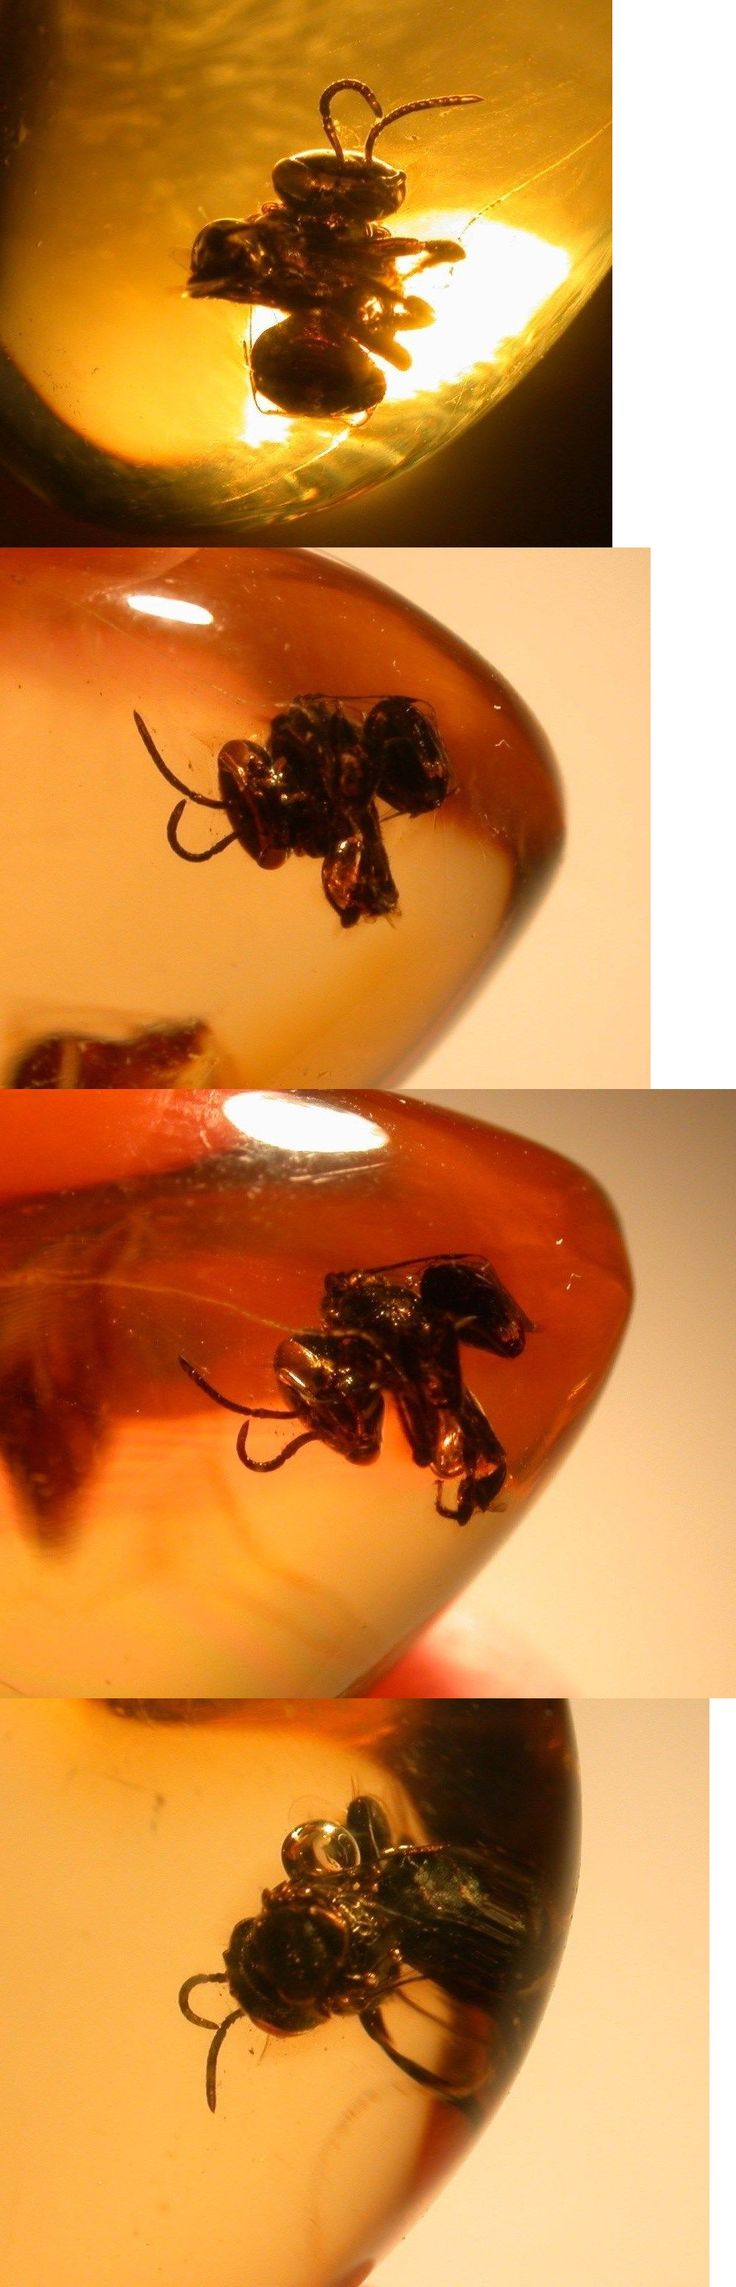 Amber 10191: Super Rare Large Stingless Bee In Authentic Dominican Amber Gemstone Extinct -> BUY IT NOW ONLY: $125 on eBay!